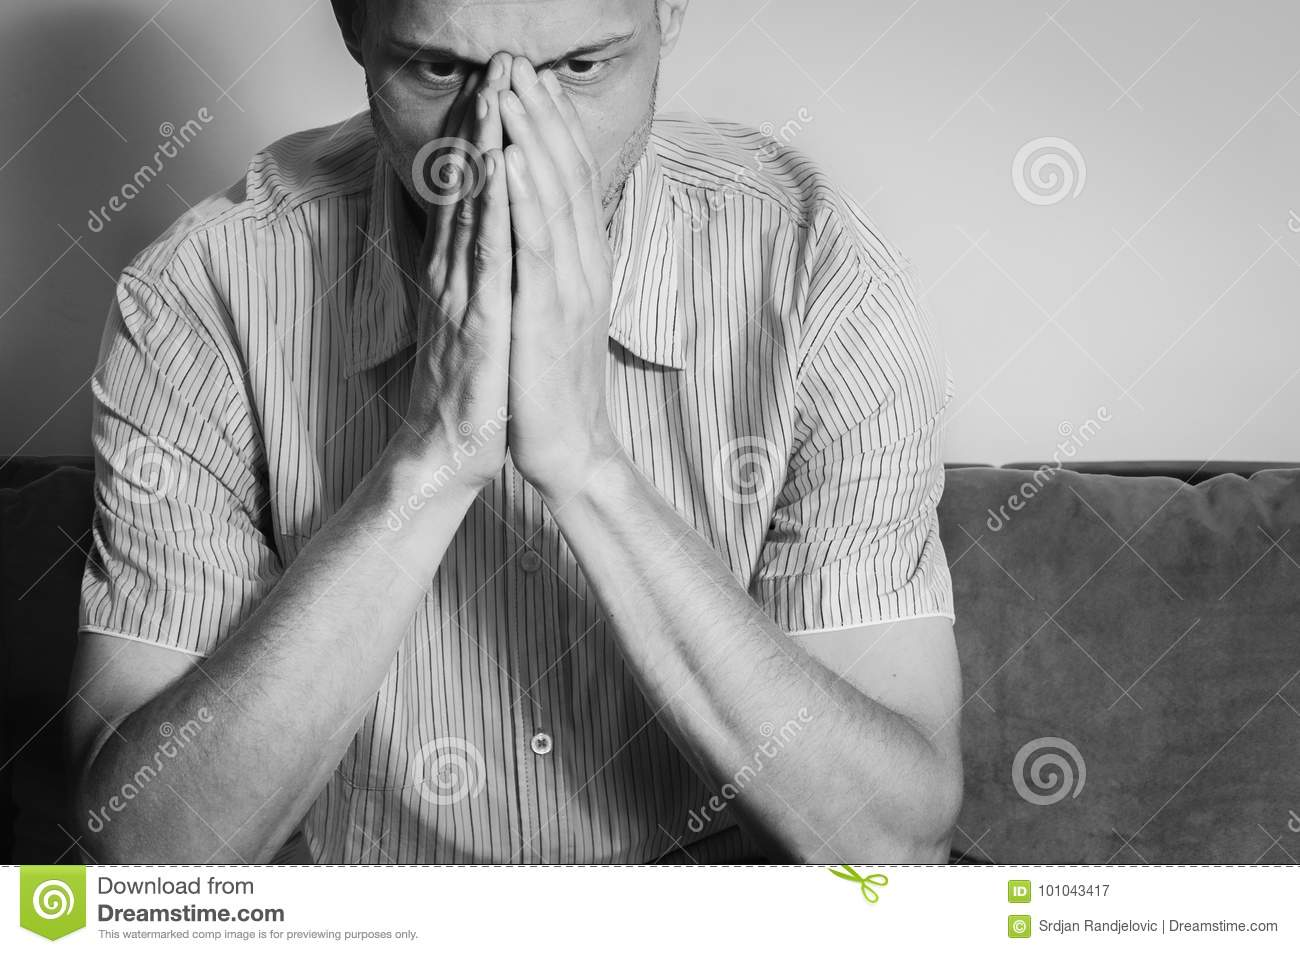 Young handsome man in the shirt cover his face with his hands feeling depressed and miserable while he thinking about life.